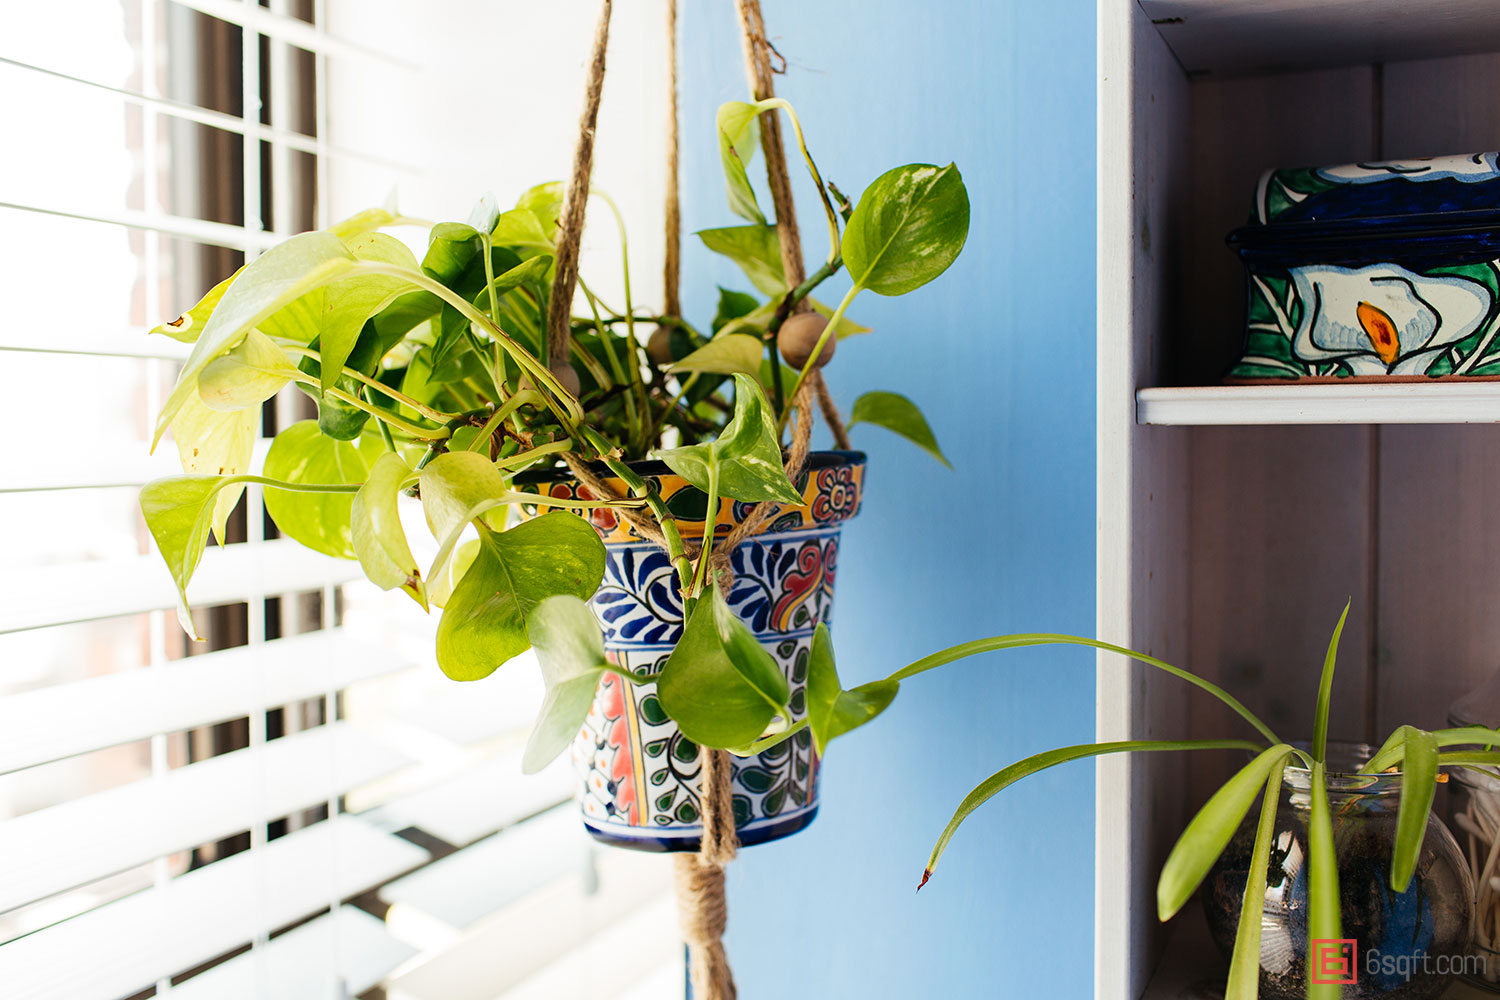 Apartment Living 101: The 10 best plants for bathrooms | 6sqft on best plants for basements, best plants for wet areas, best plants for zone 6b, best plants for containers patio, best plants for zone 10, best plants for atriums, best plants for high desert, best plants for feng shui, best plants for glass, best plants for privacy, best plants for sun room, best plants for entryway, plants that thrive in bathrooms, best plants for pool area, best plants for around a patio, best outdoor plants, best plants for water, best plants for gardening, best plants for dark rooms, best plants for decks,